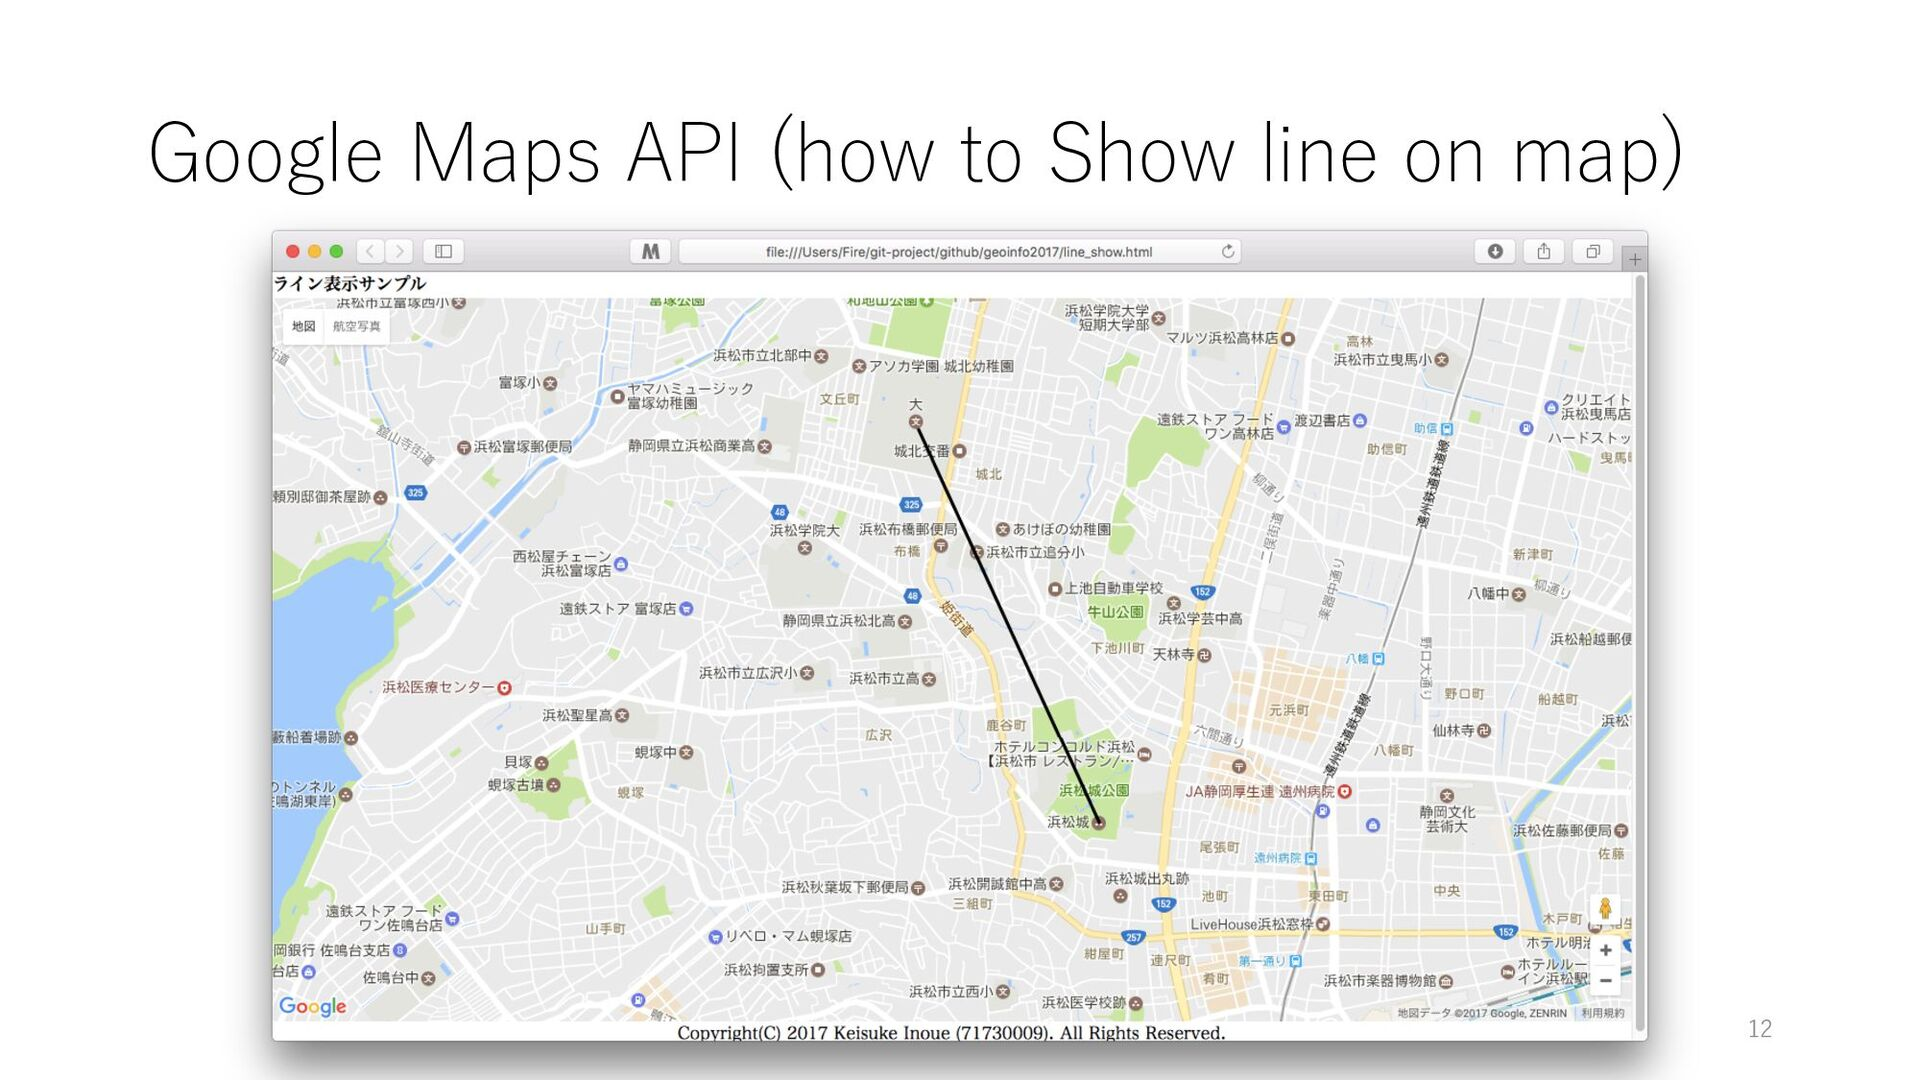 Google Maps API (how to Show line on map) 12